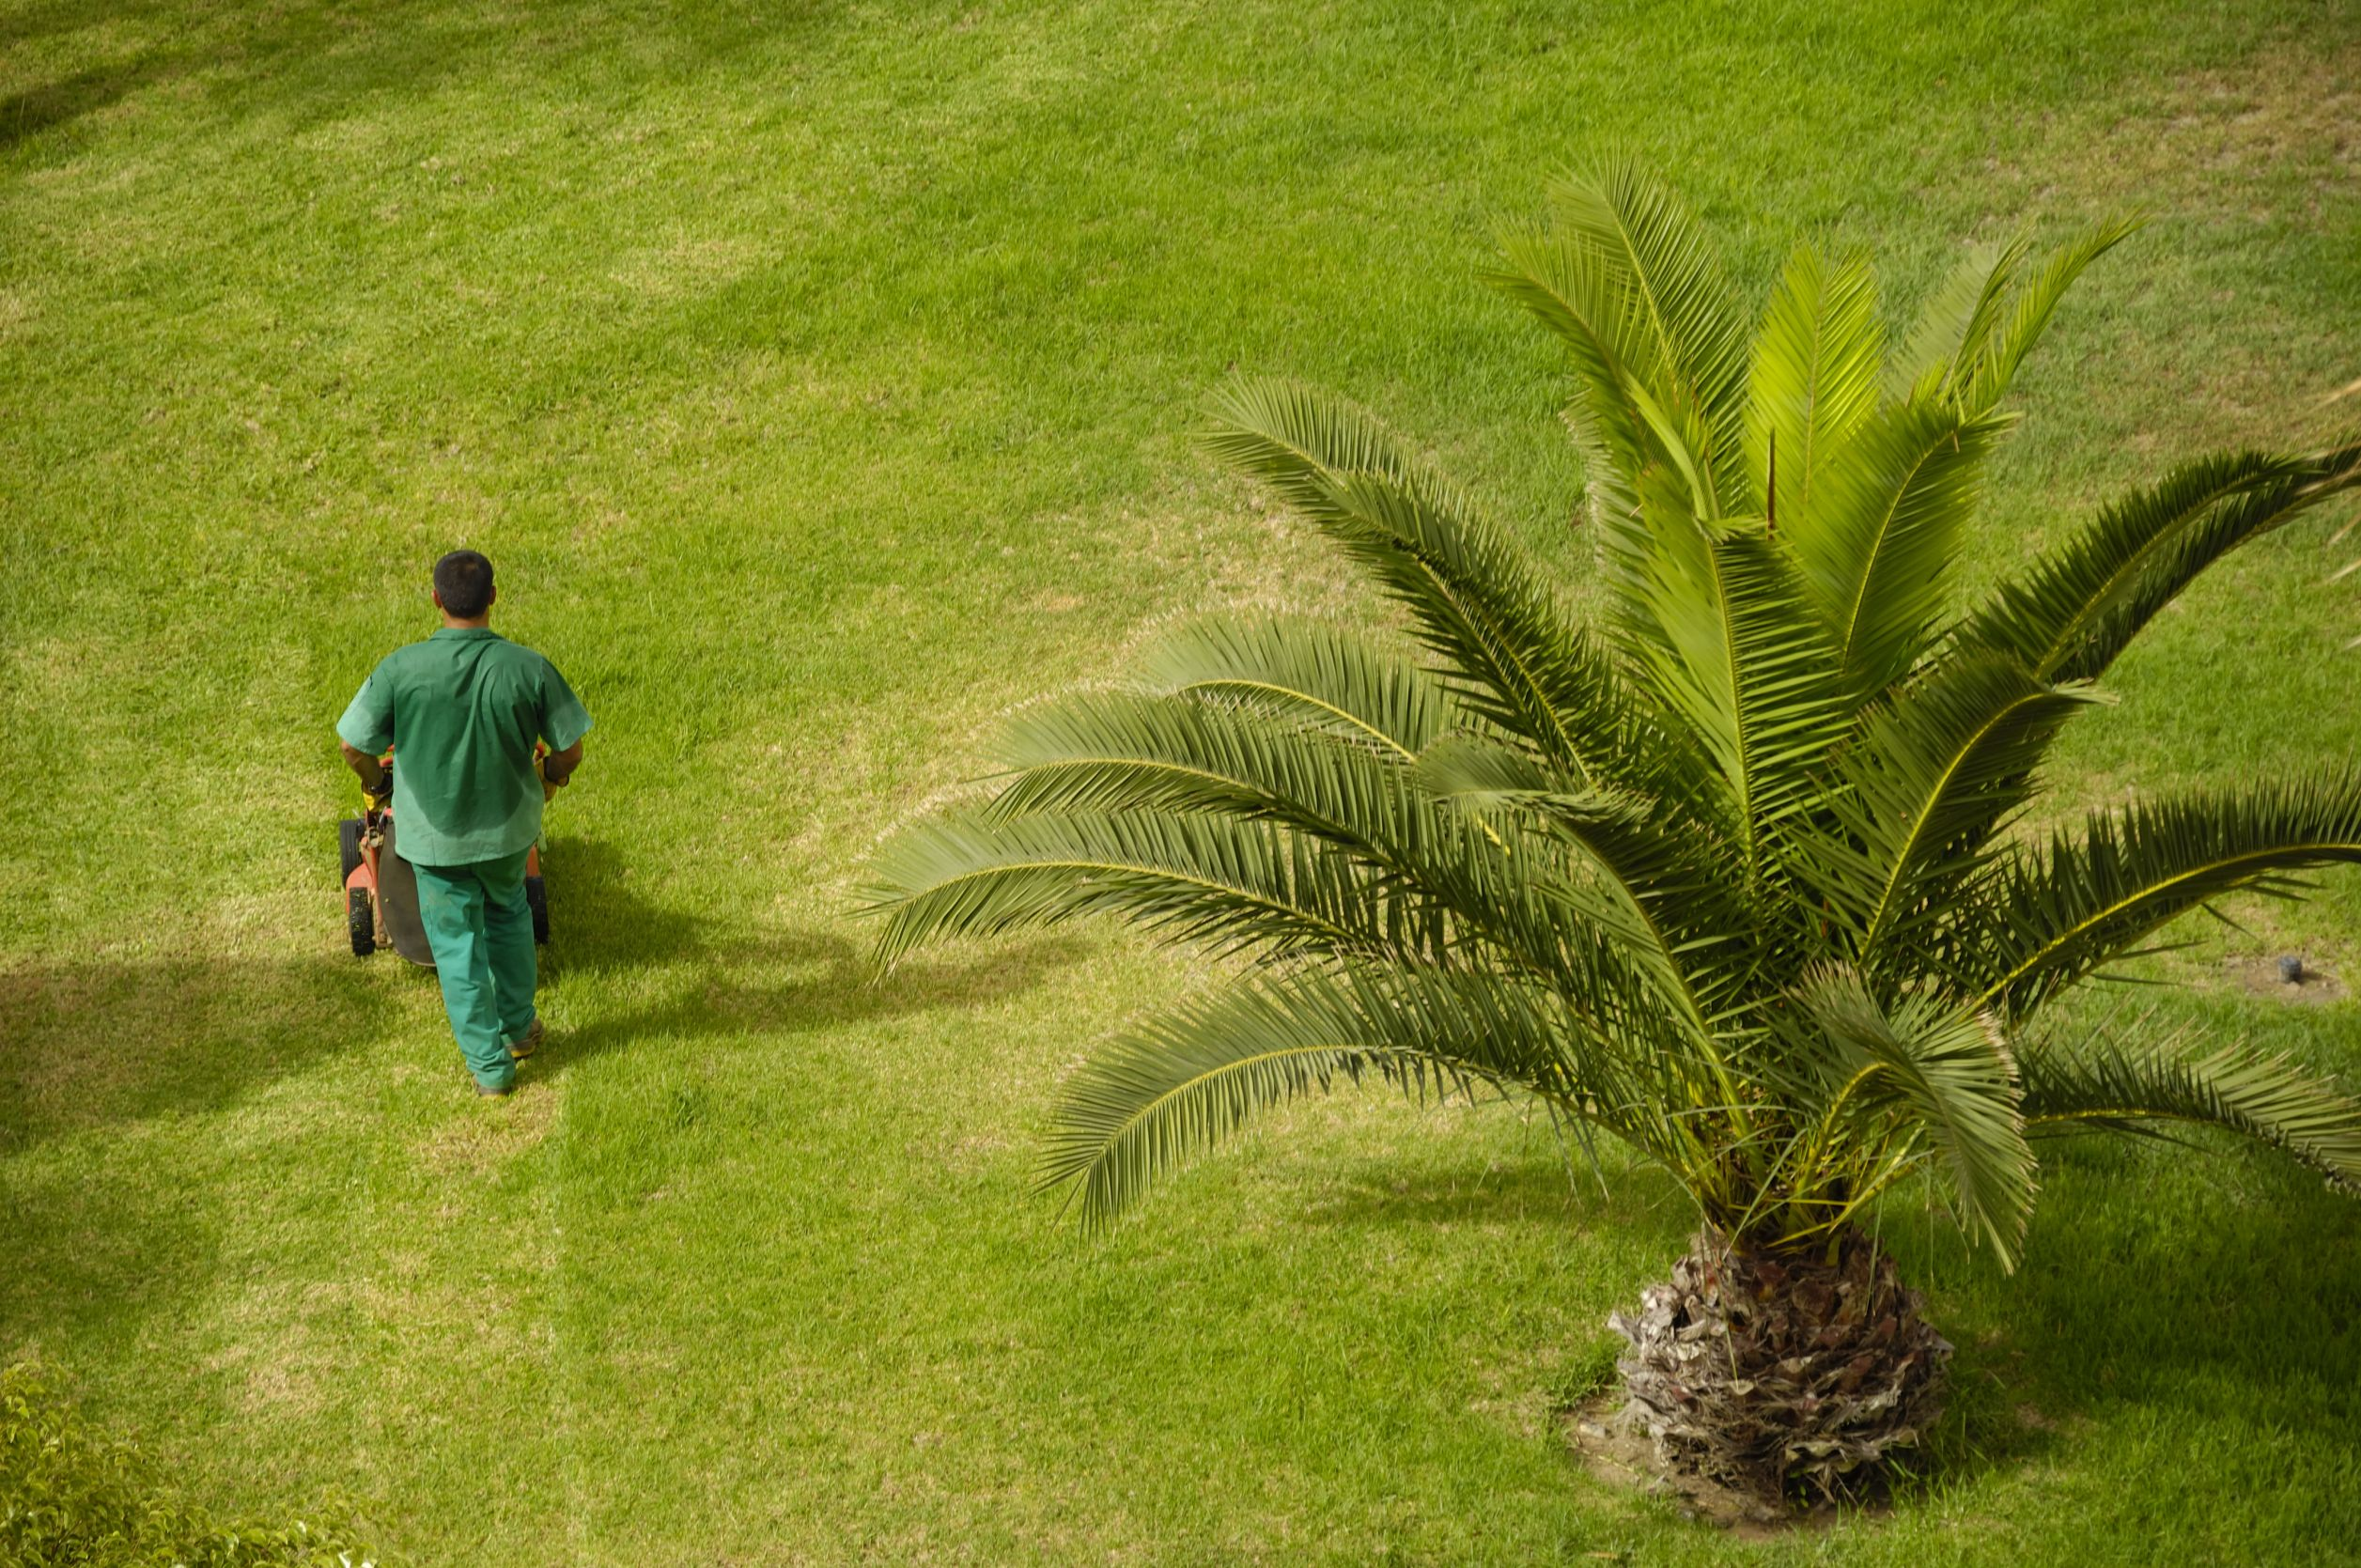 How to Find the Right Lawn Services Pro